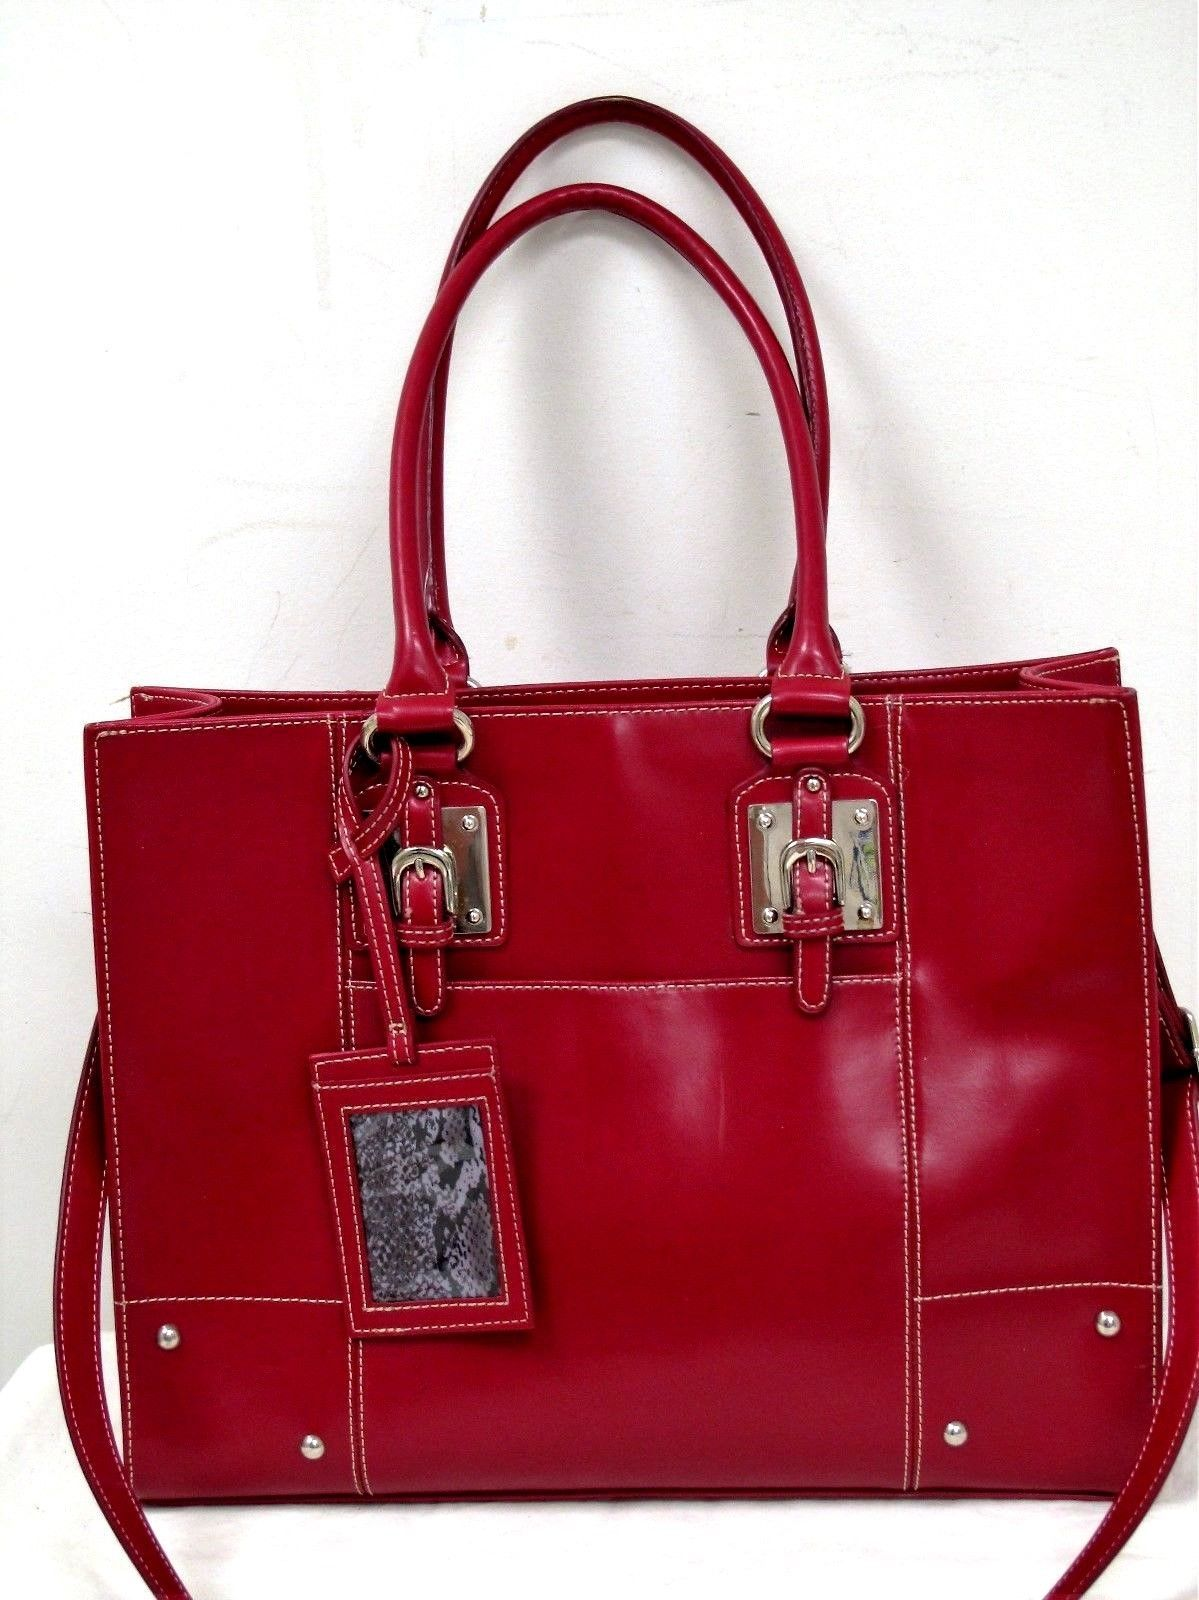 Used Wilsons Leather Red Shoulder Tote Bag Purse Sz Xl Ebay